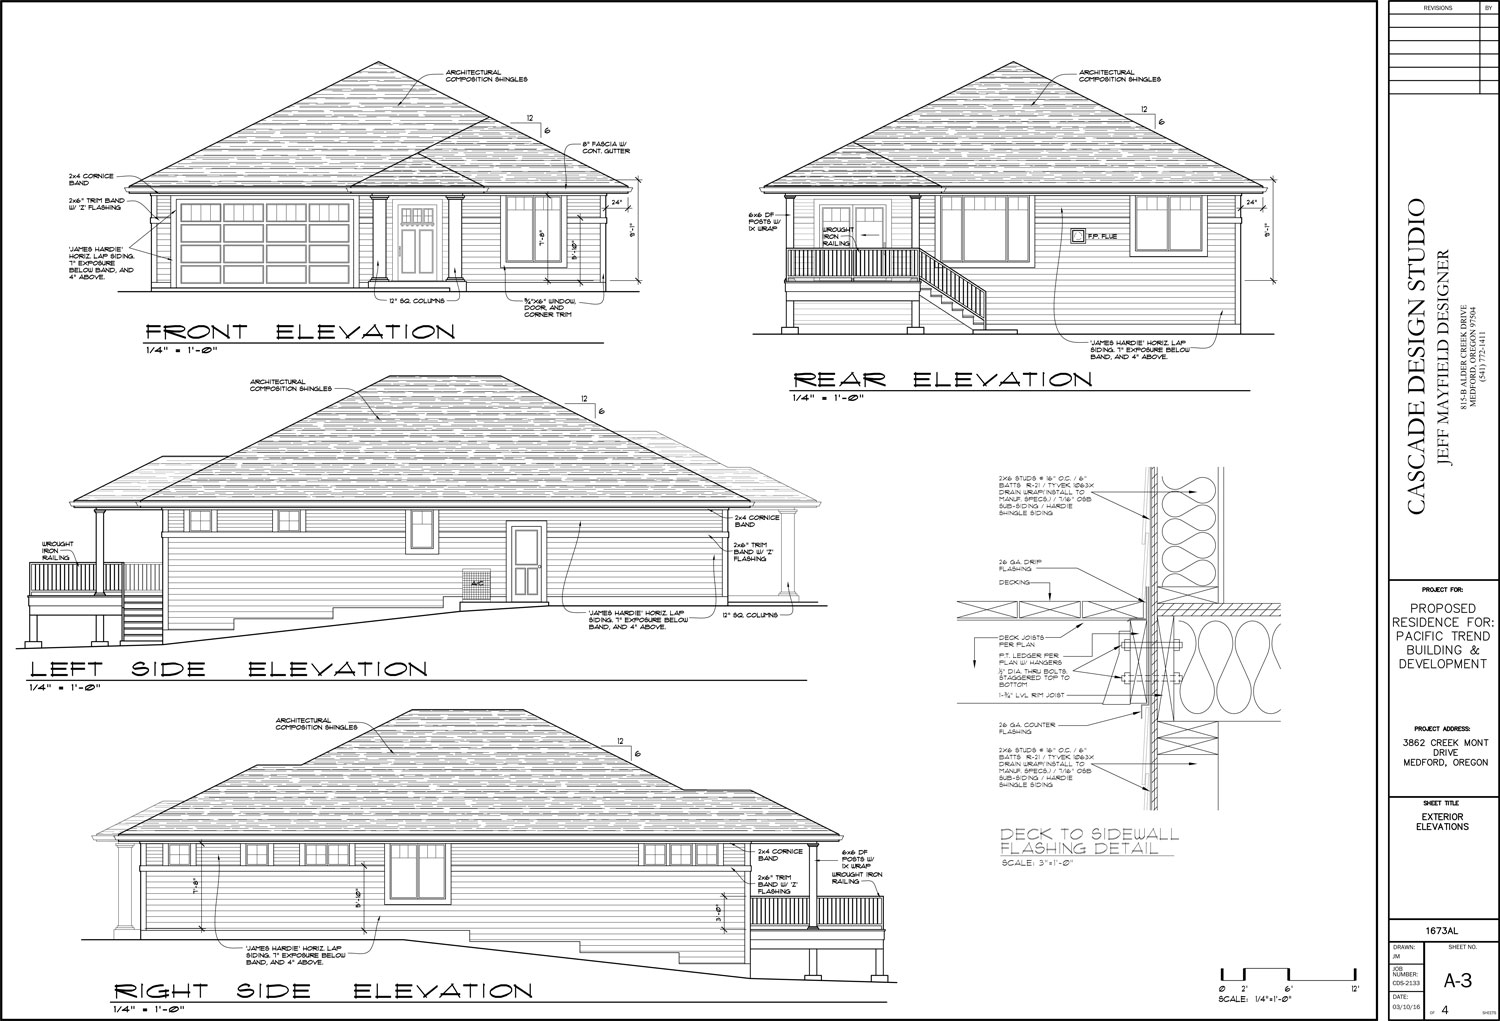 3862-Creek-Mont-Exterior-Elevations